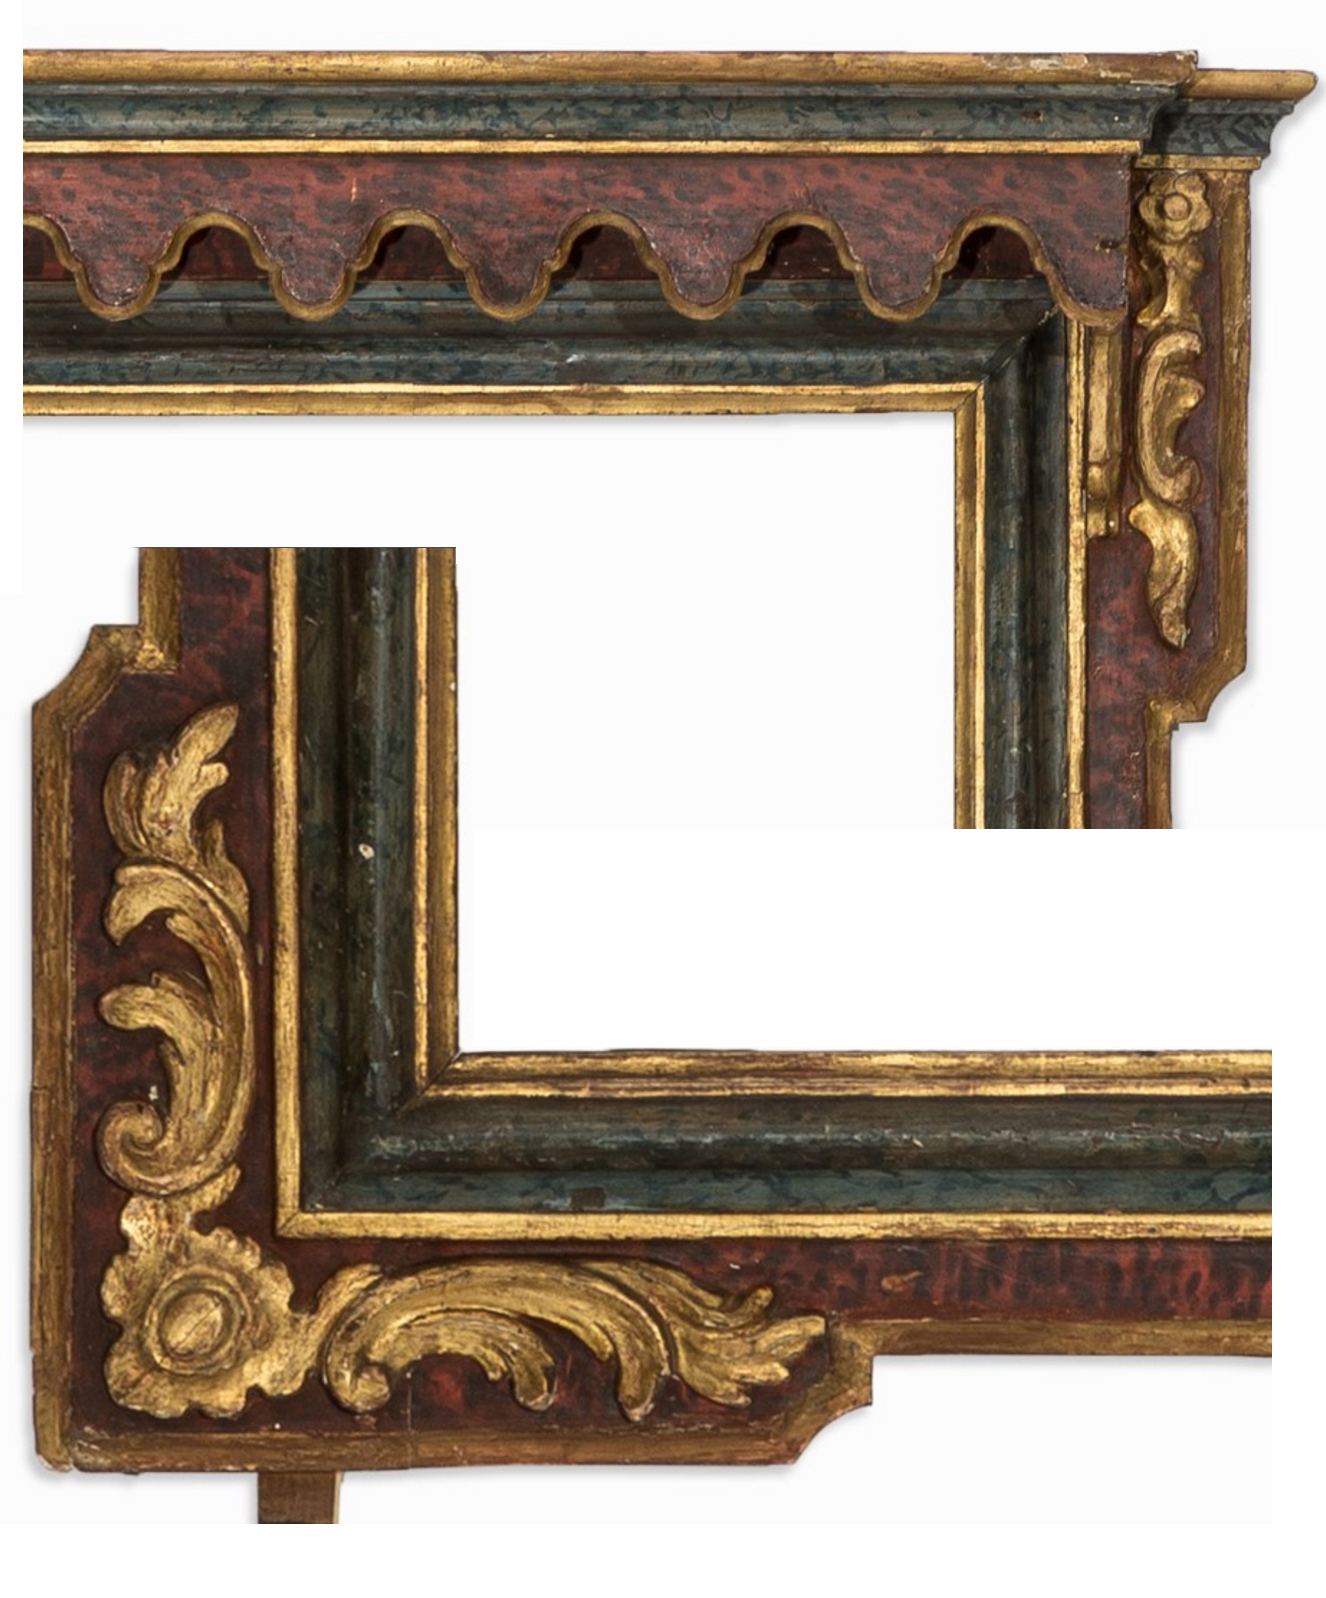 Auctionata: sale of antique frames in Berlin 2016 | The Frame Blog